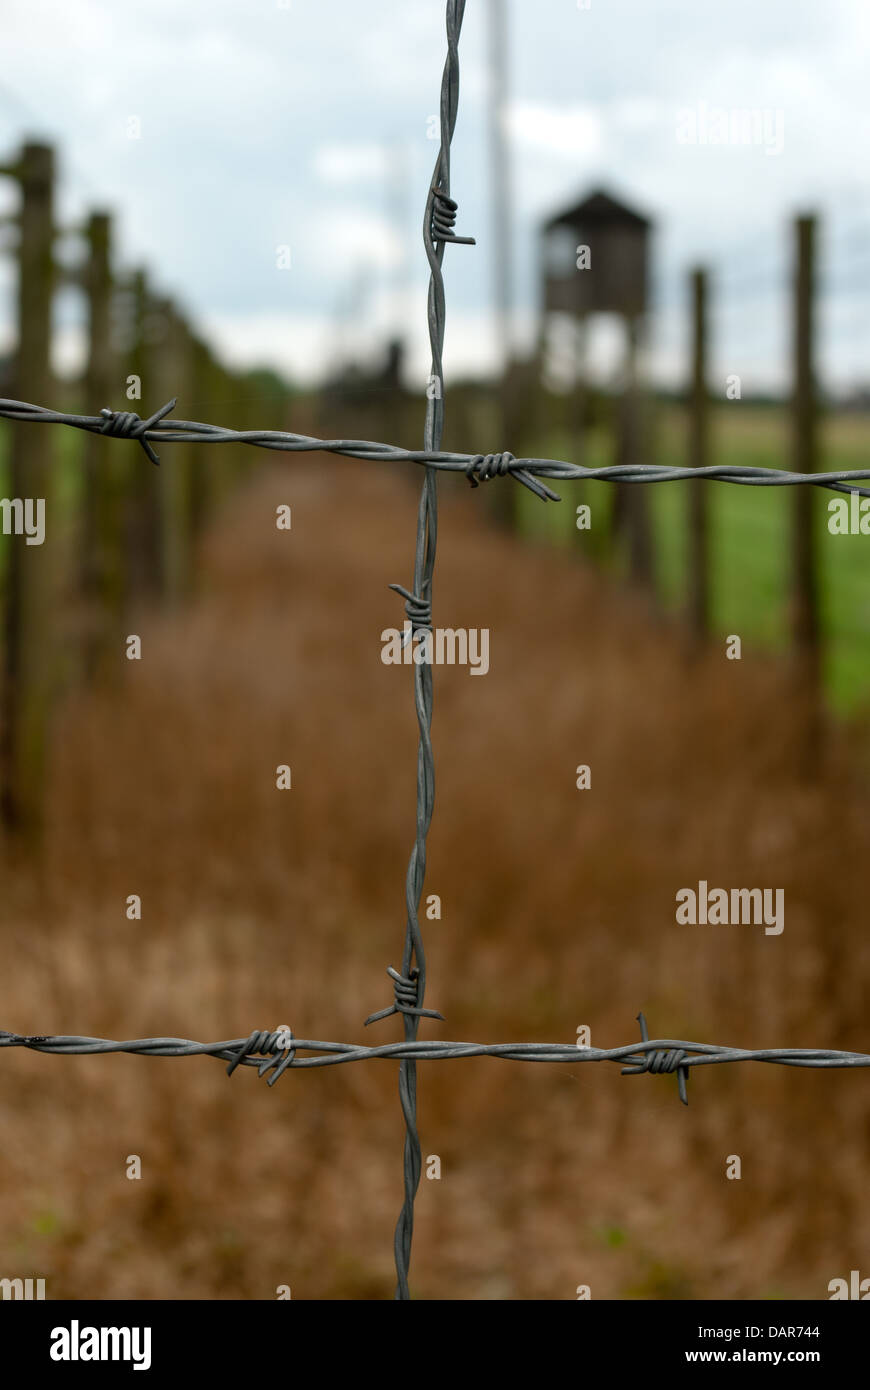 Barbed wire fence, concentration camp - Stock Image